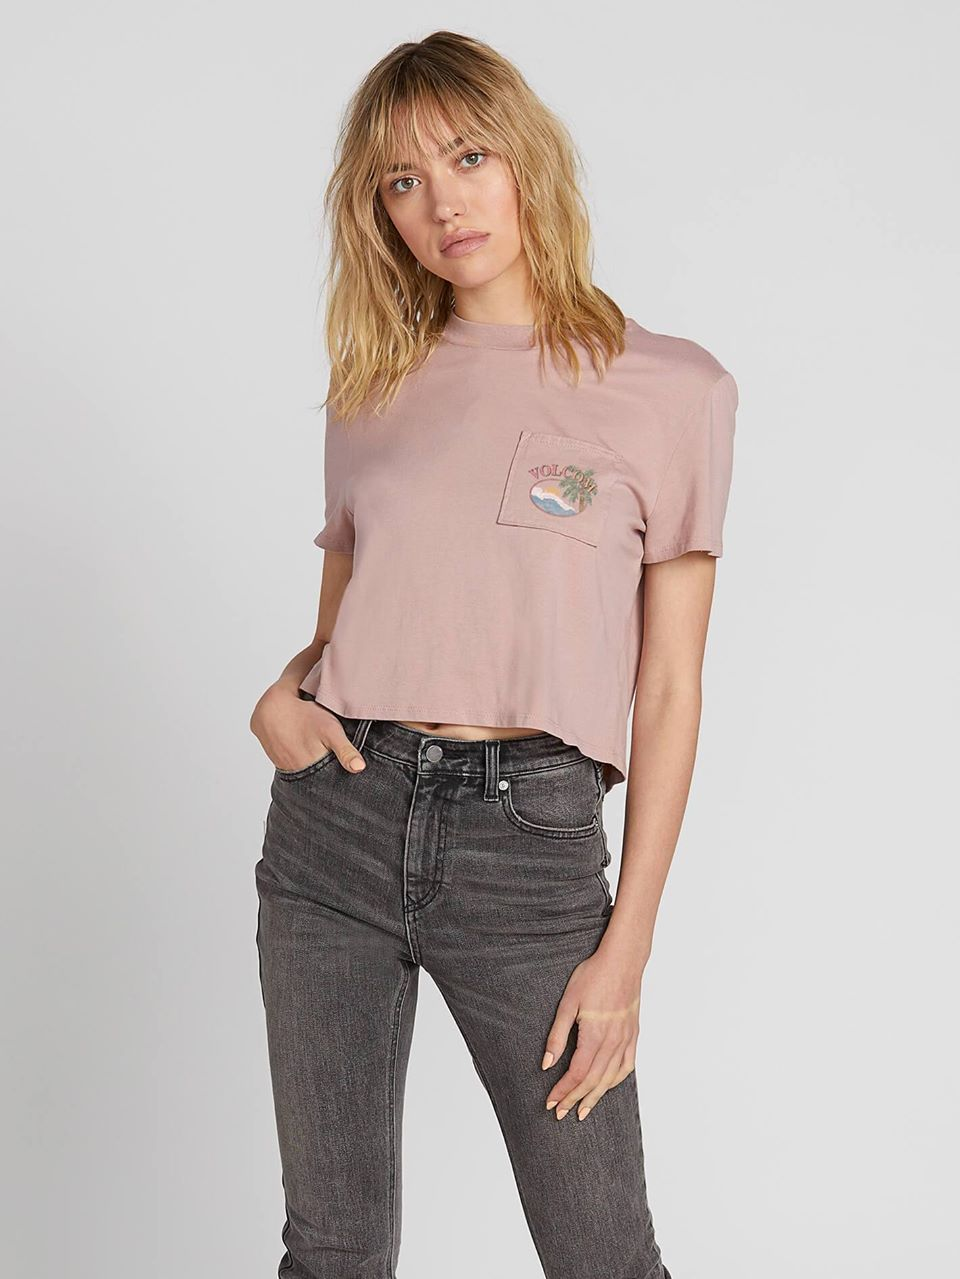 Made From Stoke Tee - Faded Mauve